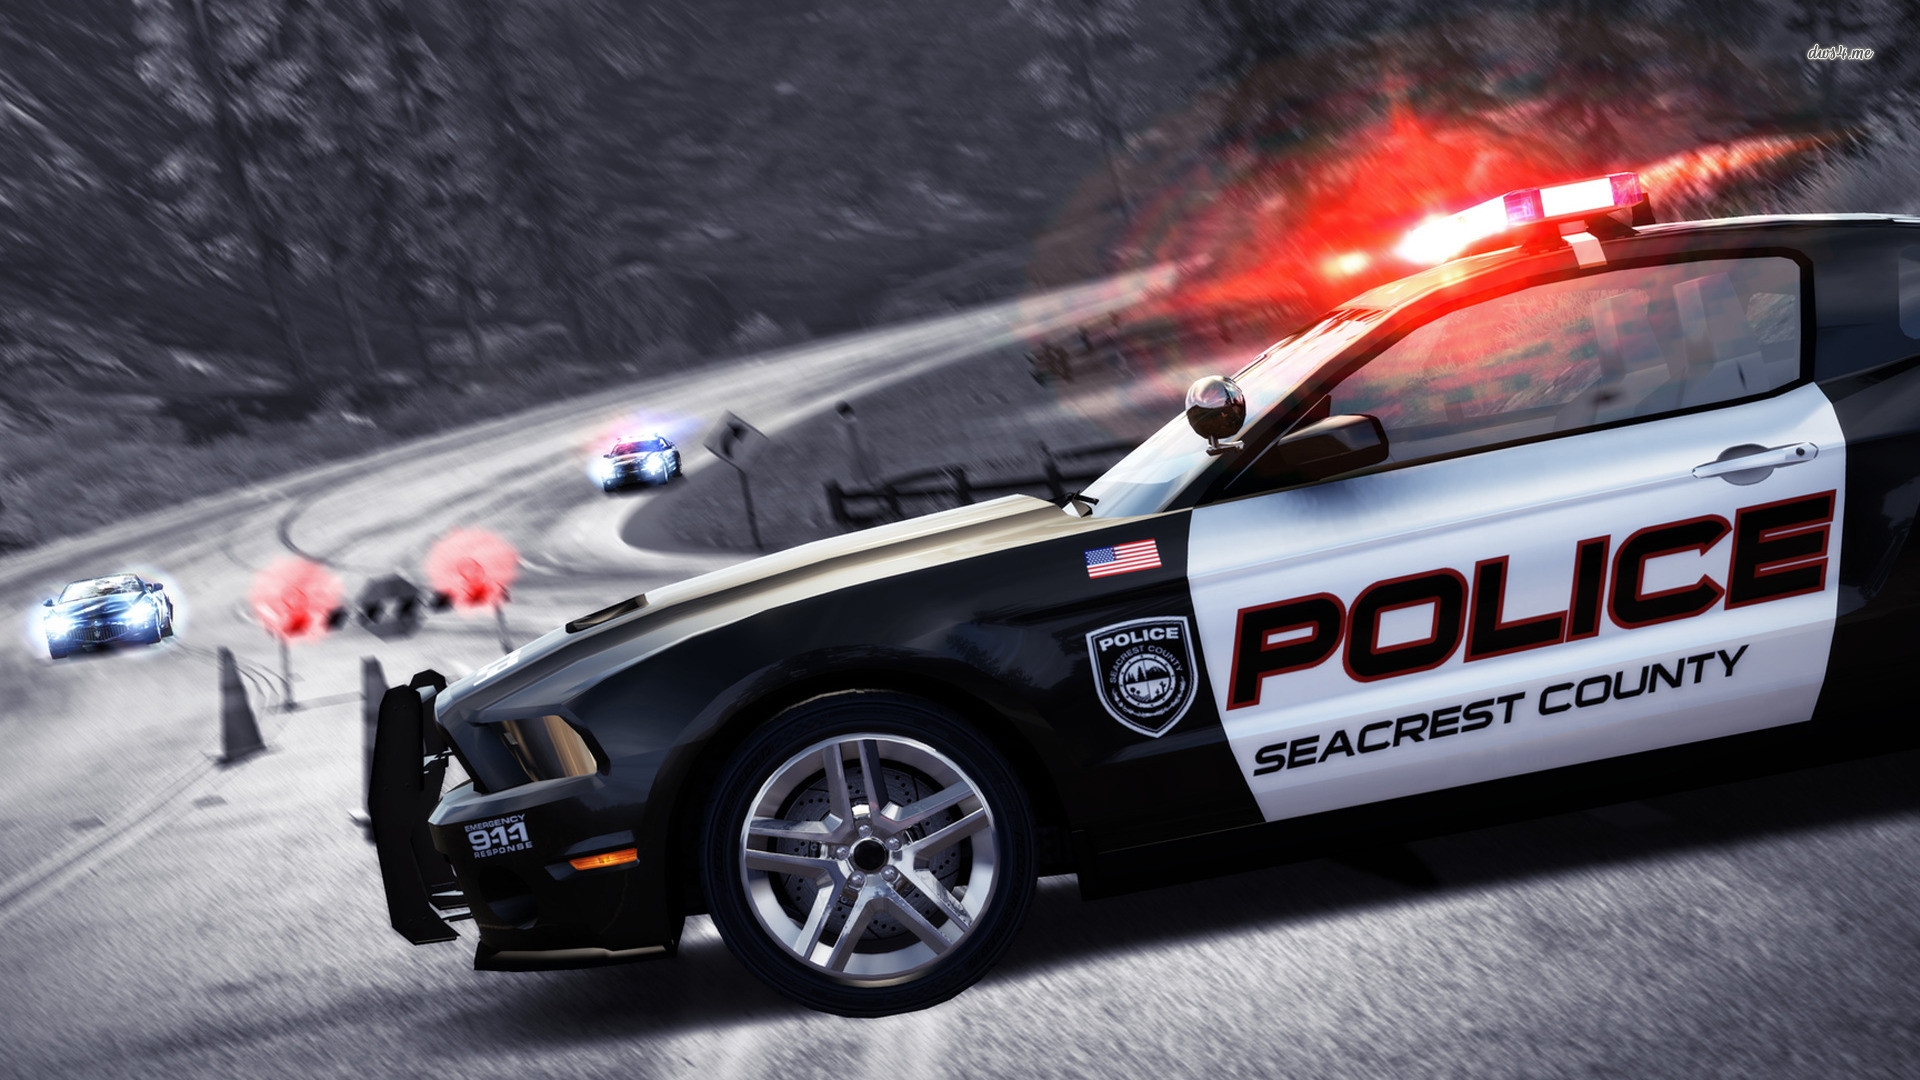 most beautiful police wallpaper ololoshenka Pinterest | HD Wallpapers |  Pinterest | Hd wallpaper, Wallpaper and Wallpaper backgrounds